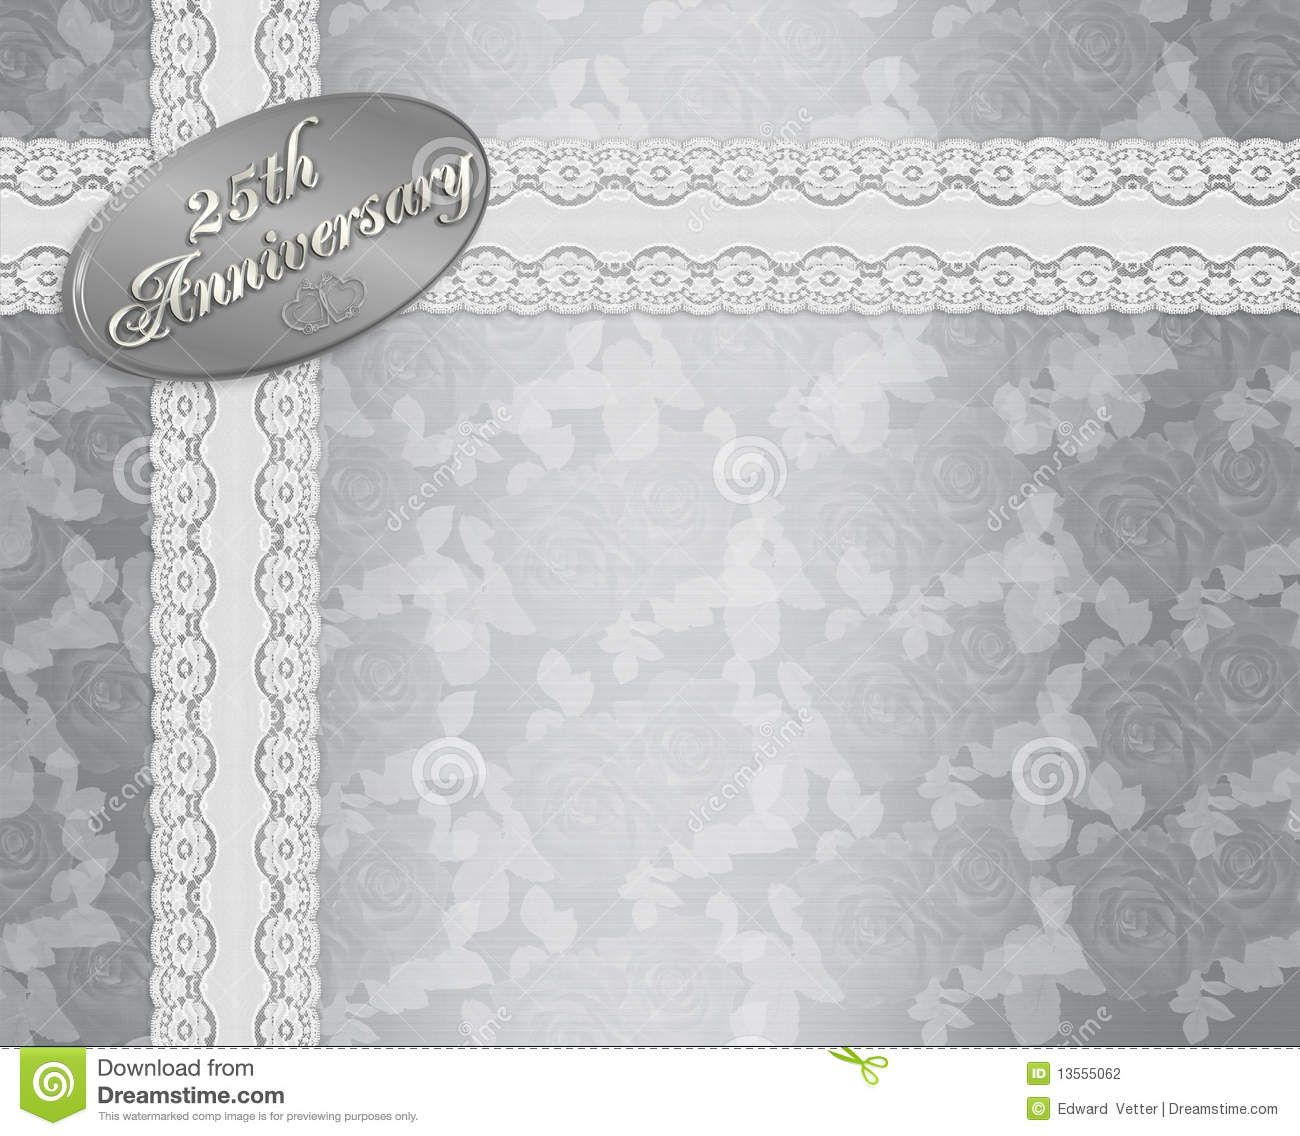 Backdrops Silver Wedding Invitations: 25th Wedding Anniversary Stationery